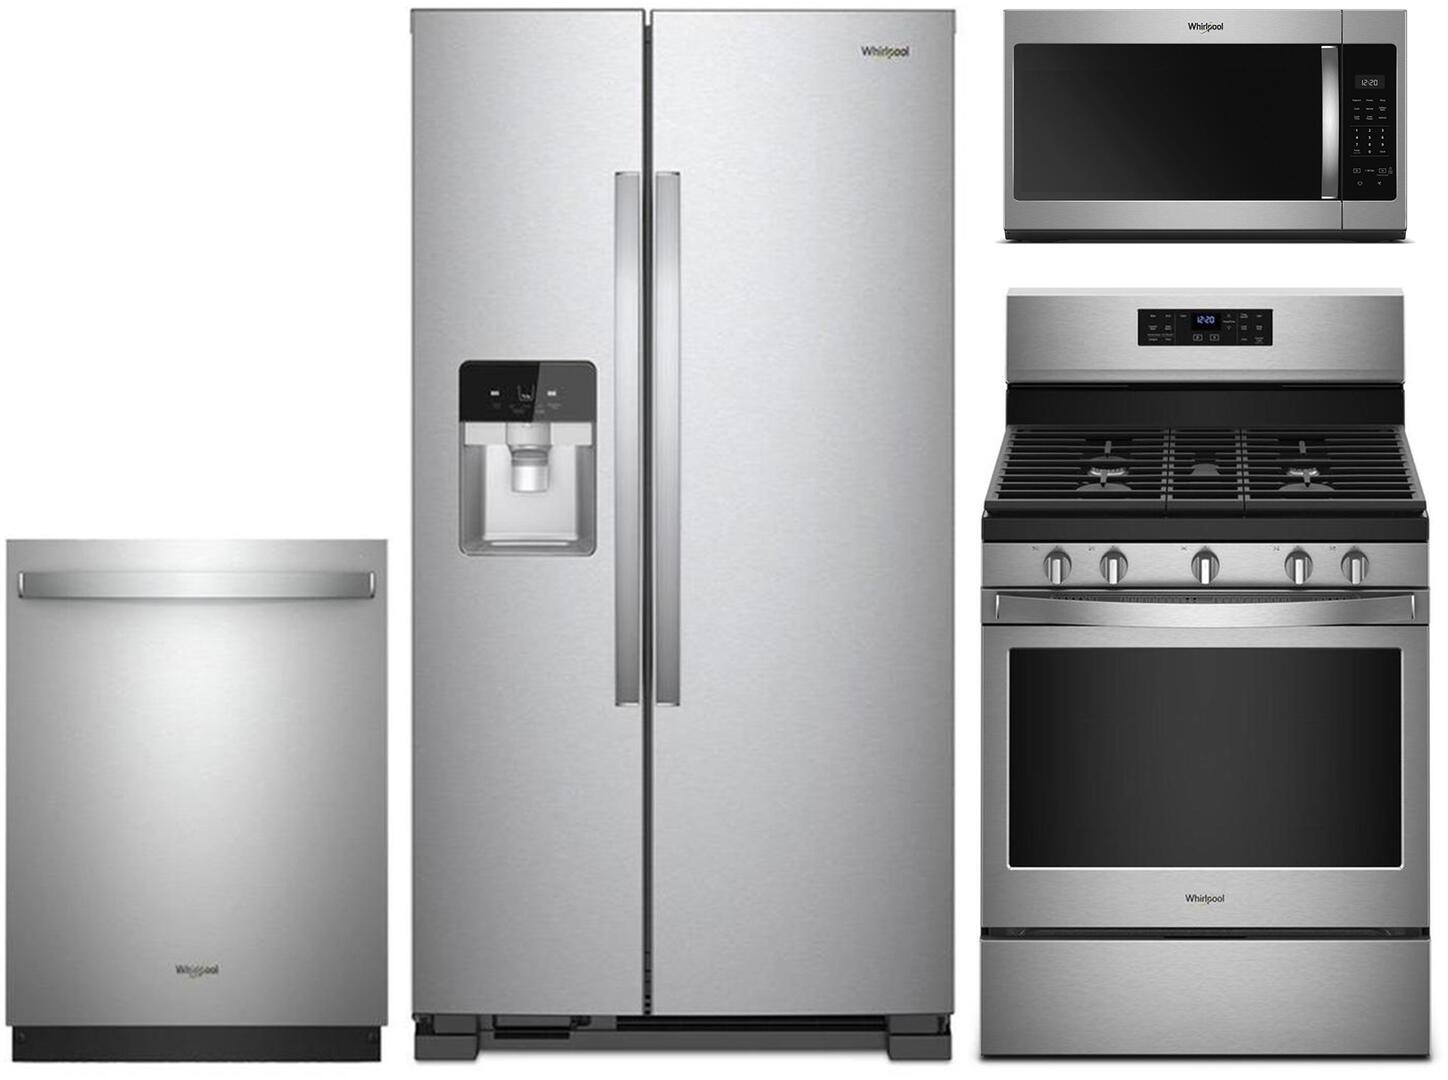 whirlpool 930185 kitchen appliance packages appliances connection. Black Bedroom Furniture Sets. Home Design Ideas